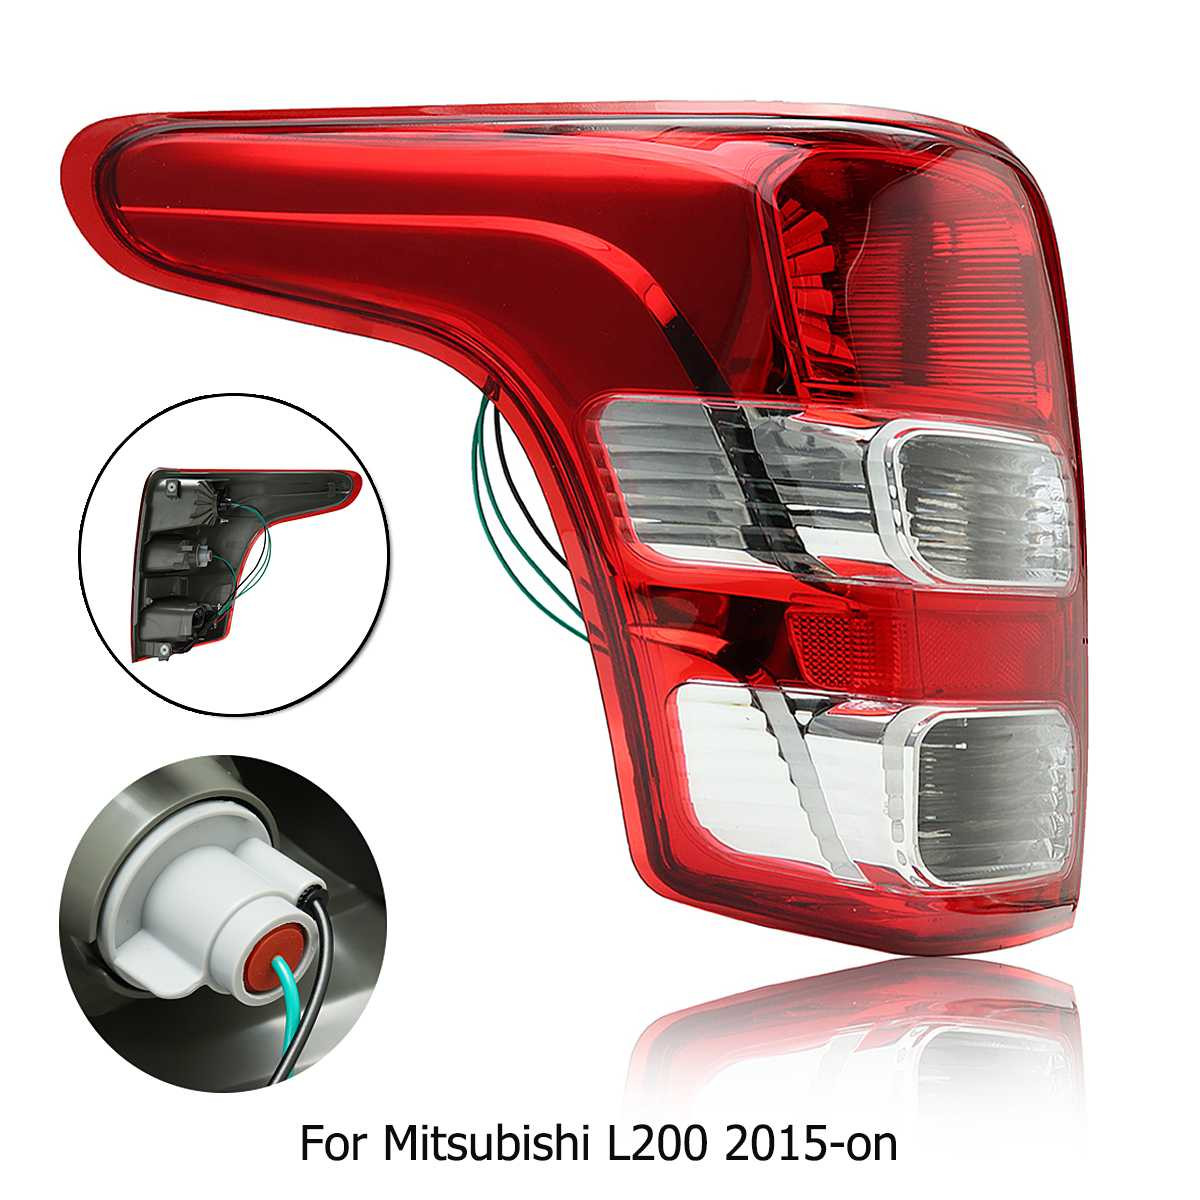 Red Tail Light Lamp Left Side for Mitsubishi L200 2015-on for Triton for Fiat for StradaRed Tail Light Lamp Left Side for Mitsubishi L200 2015-on for Triton for Fiat for Strada